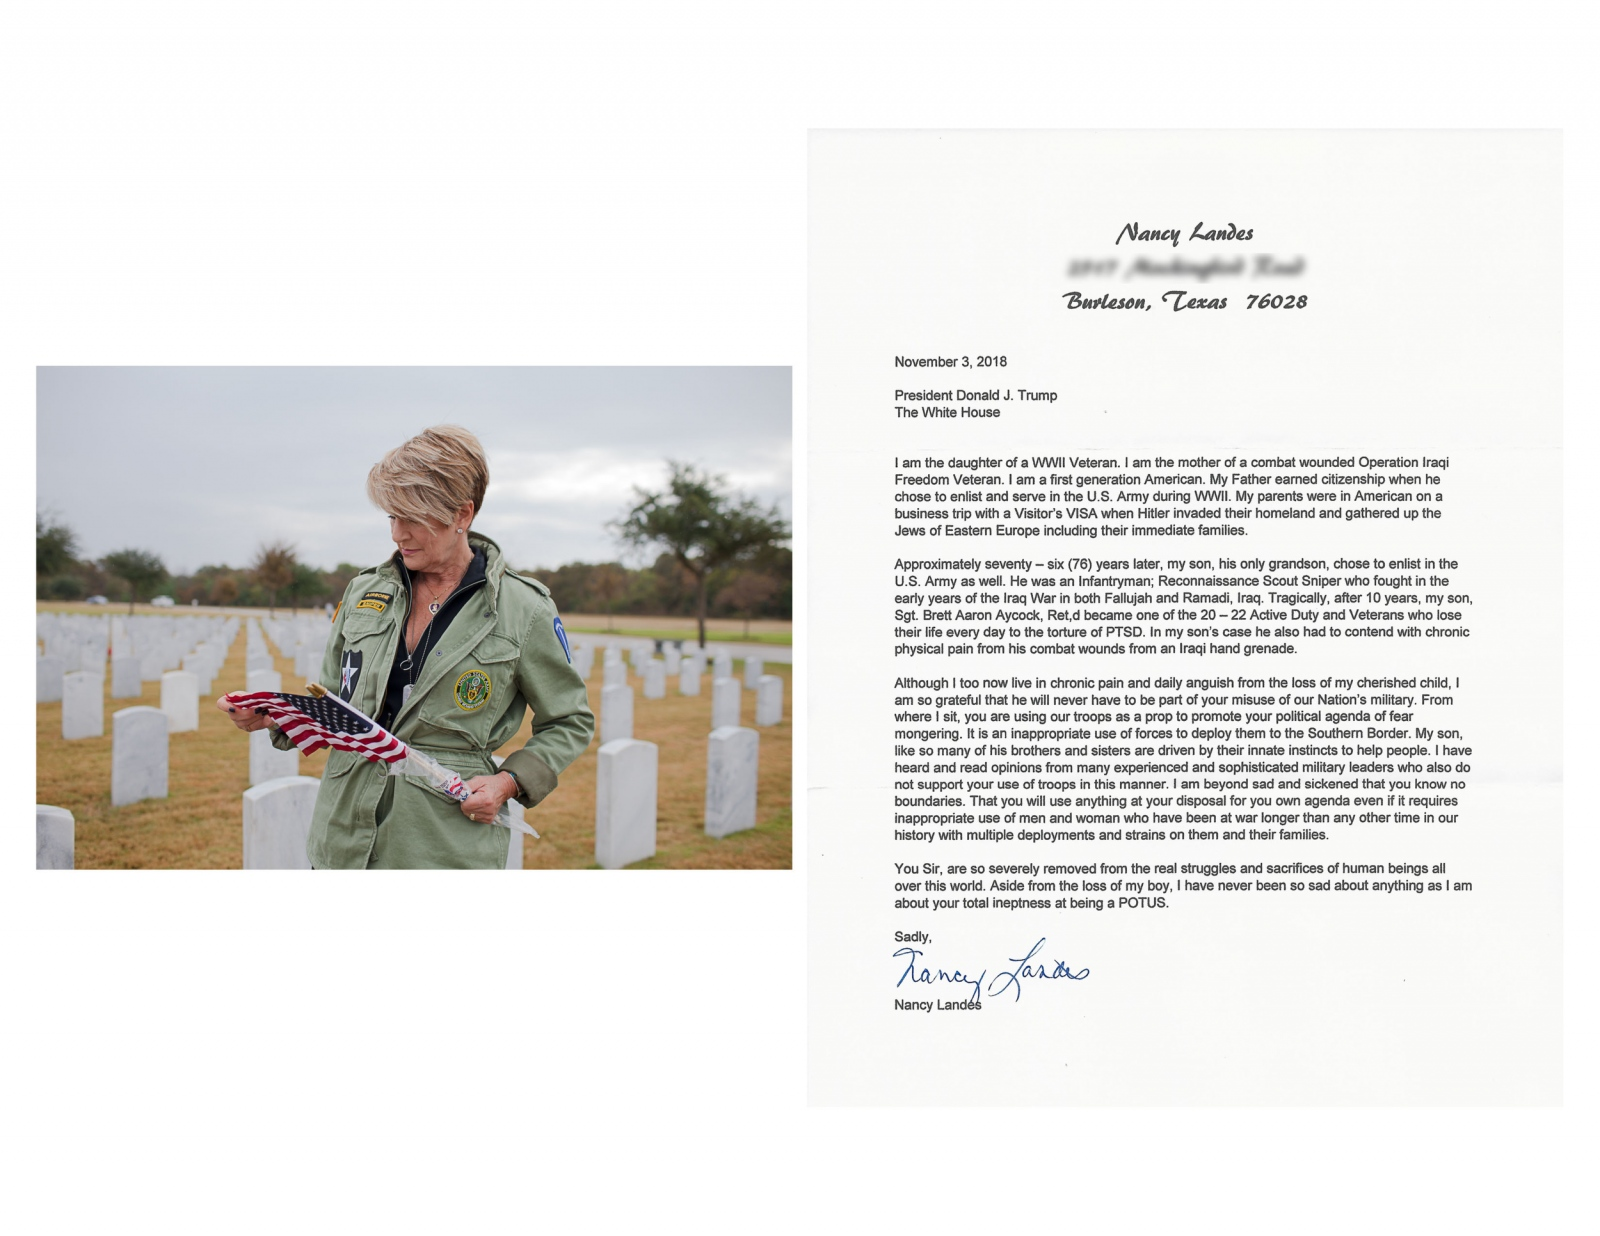 Photography image - Loading 20181103_nancy_landis_burleson_texas_veterans_border_postcards_from_americans.JPG